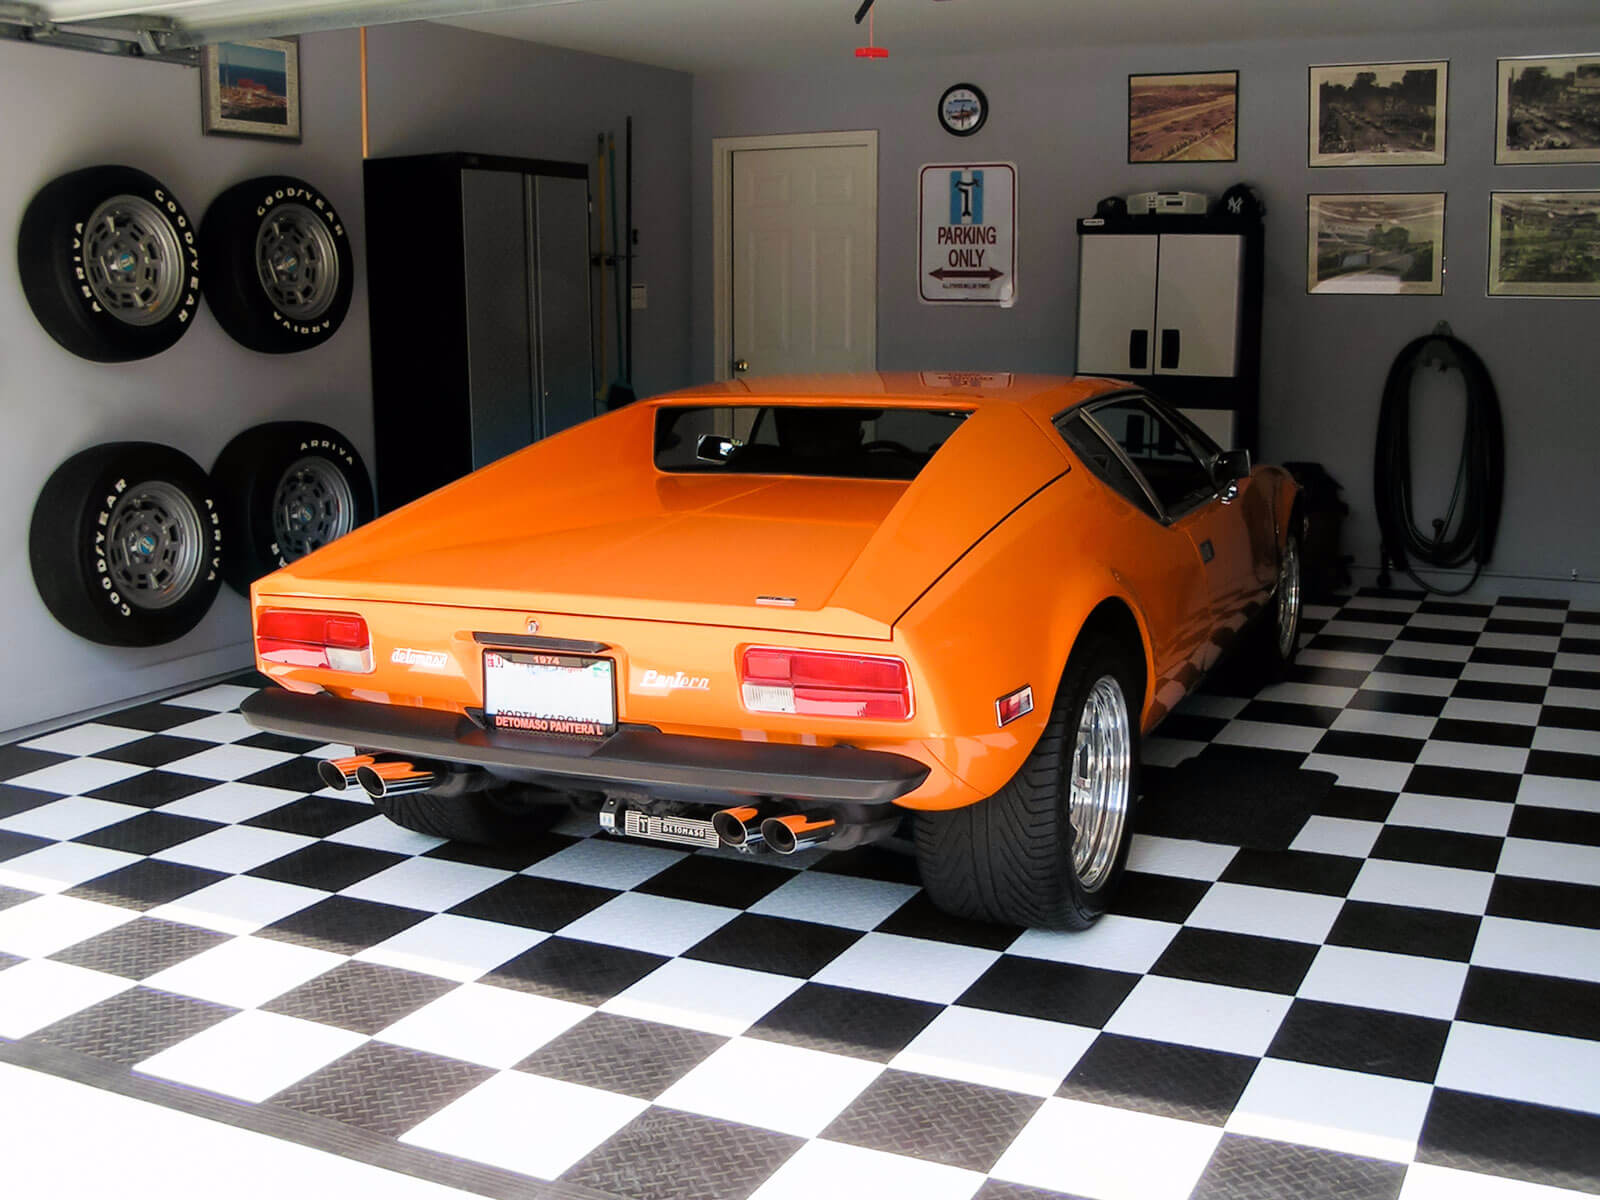 Residential garage with a De Tomaso Pantera and RaceDeck Diamond black and white floor